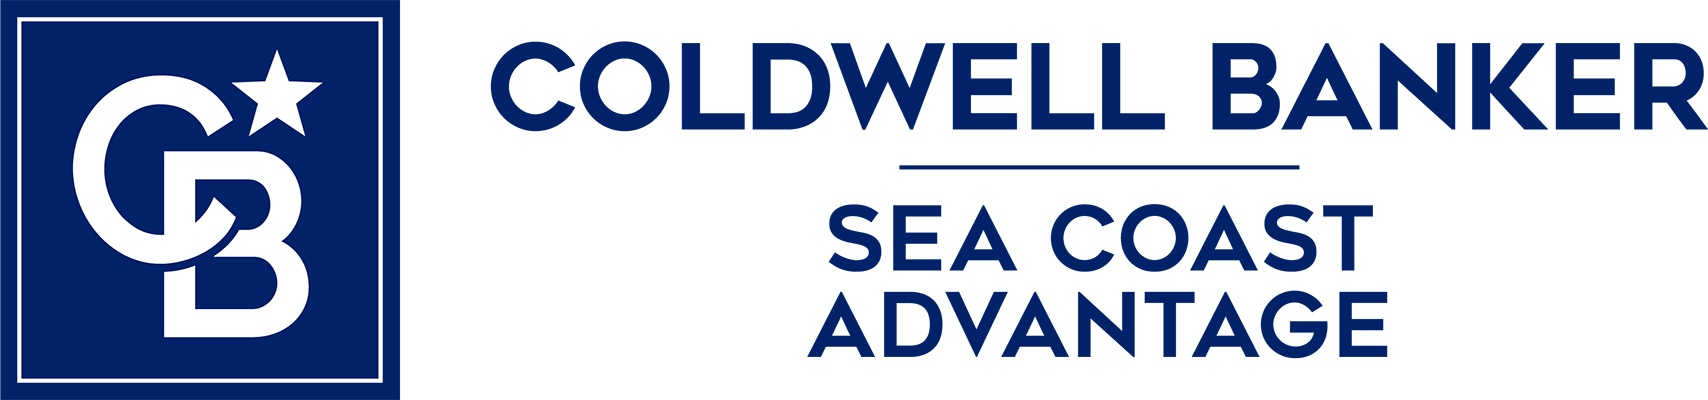 Holly Overton - Coldwell Banker Sea Coast Advantage Realty